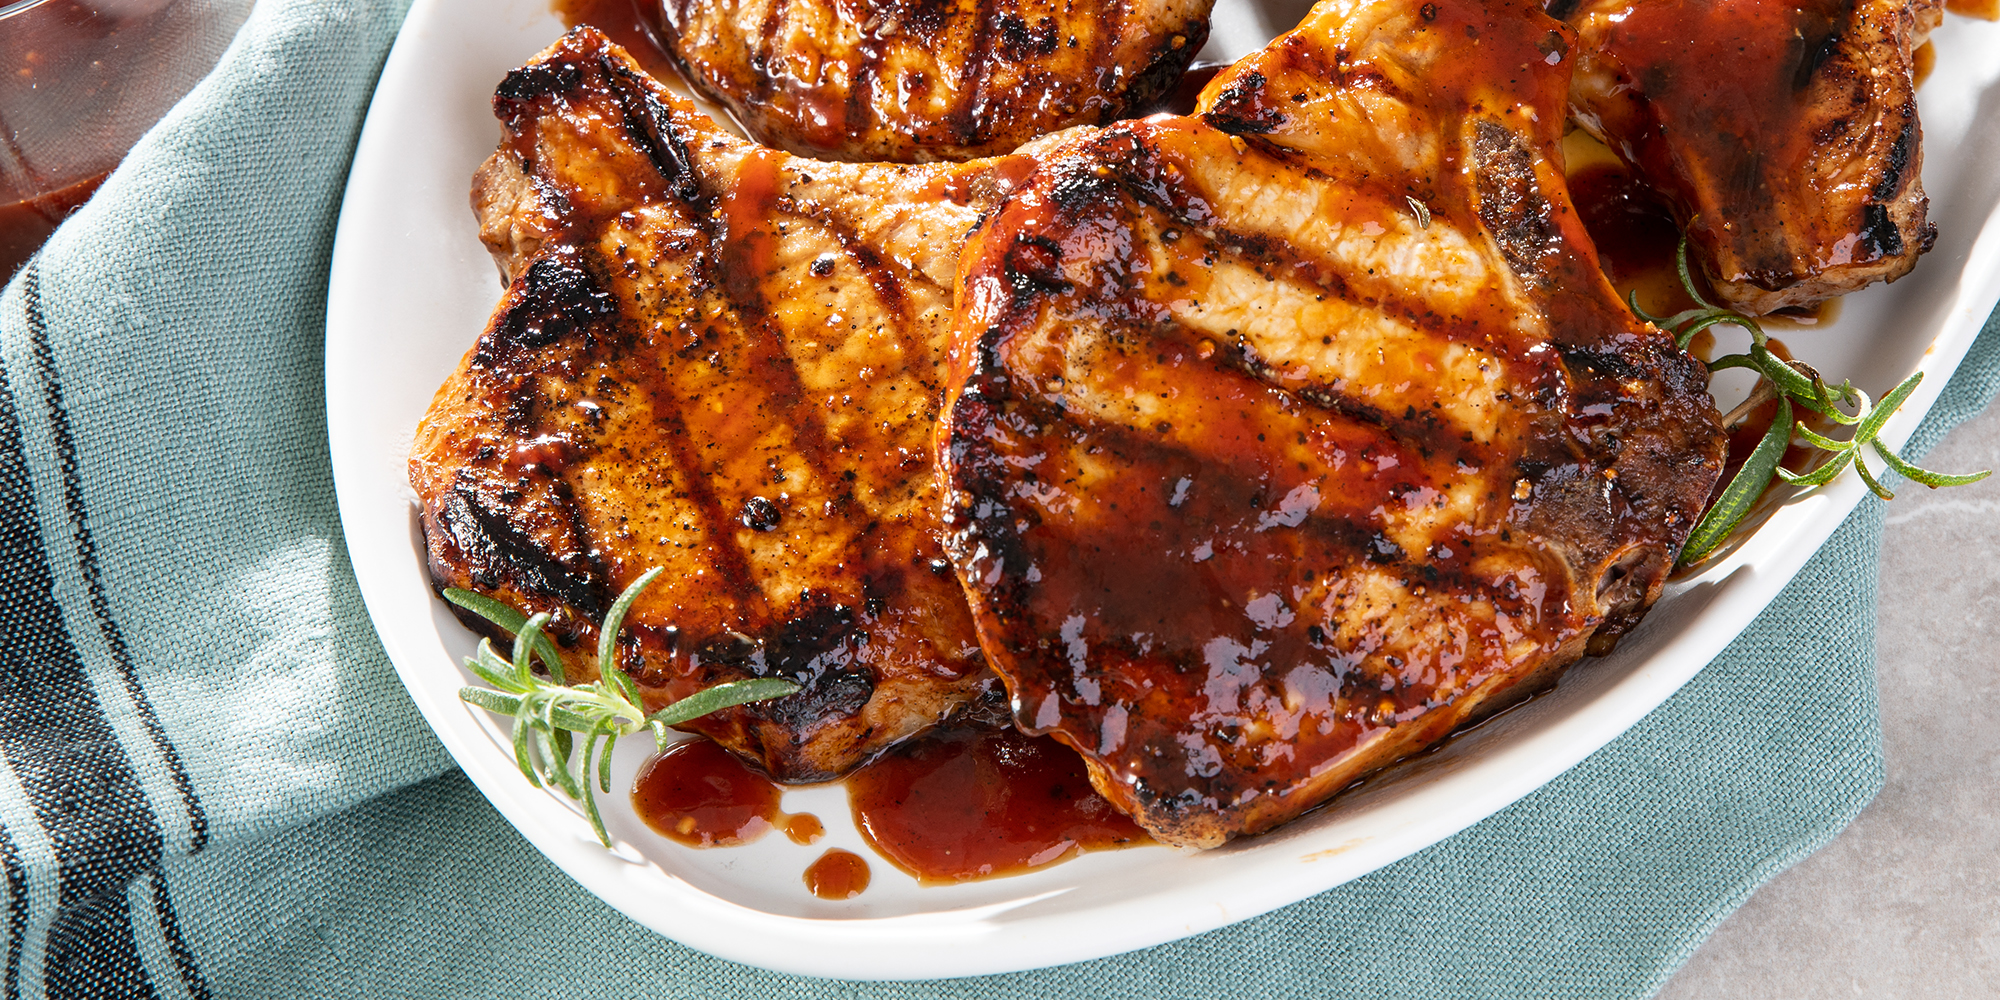 Family style platter of World's Best Honey Garlic Pork Chops garnished with extra sauce and fresh herbs.